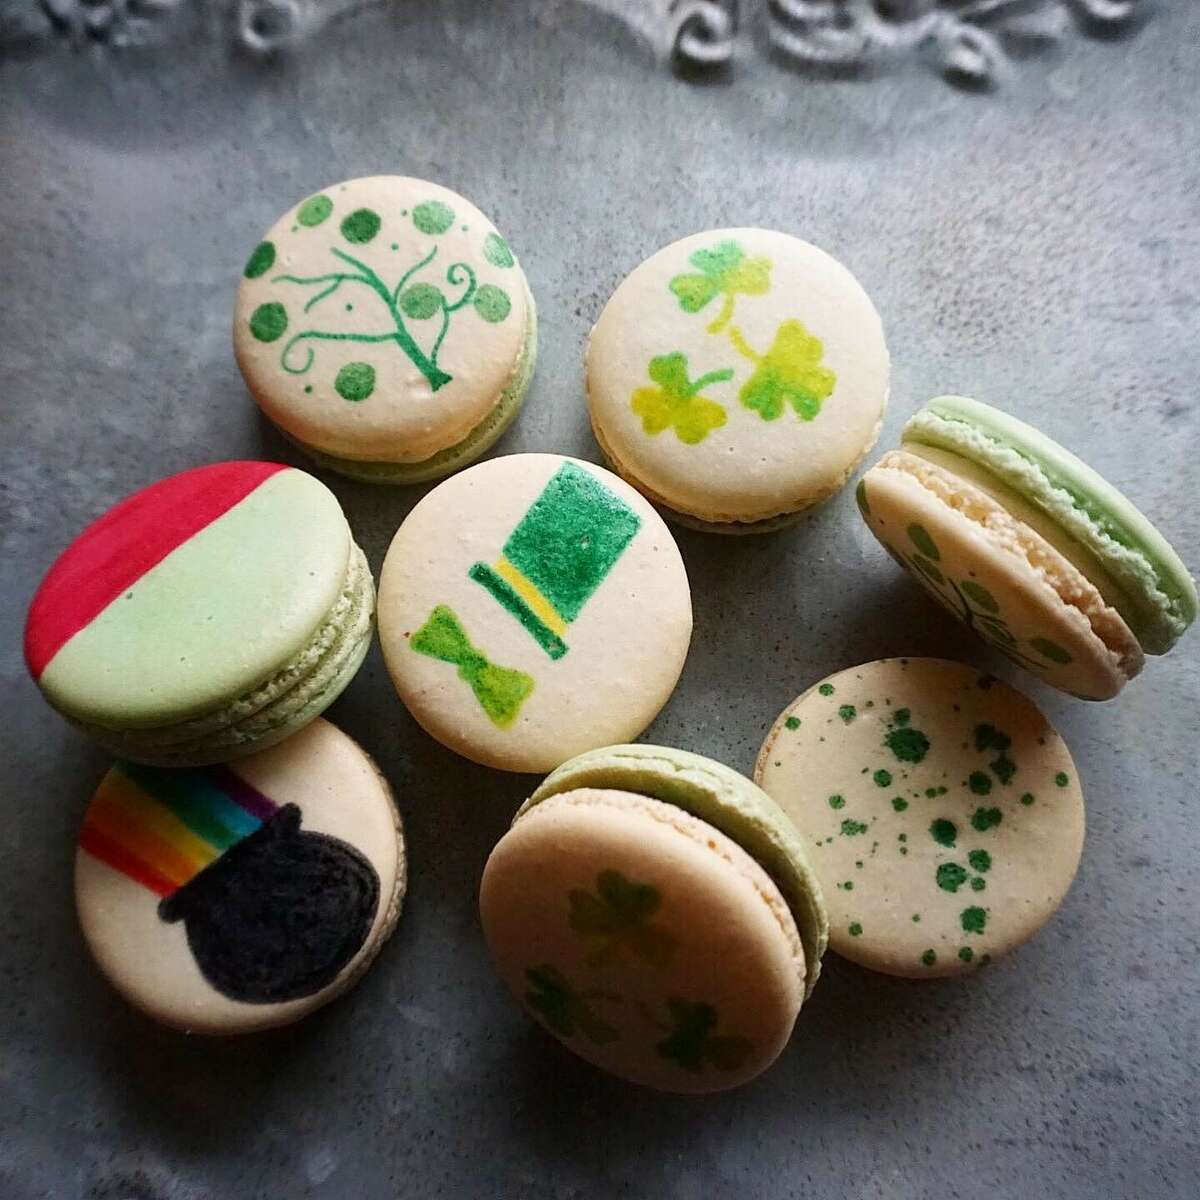 St. Patrick's Day macarons from Black Magic Sweets